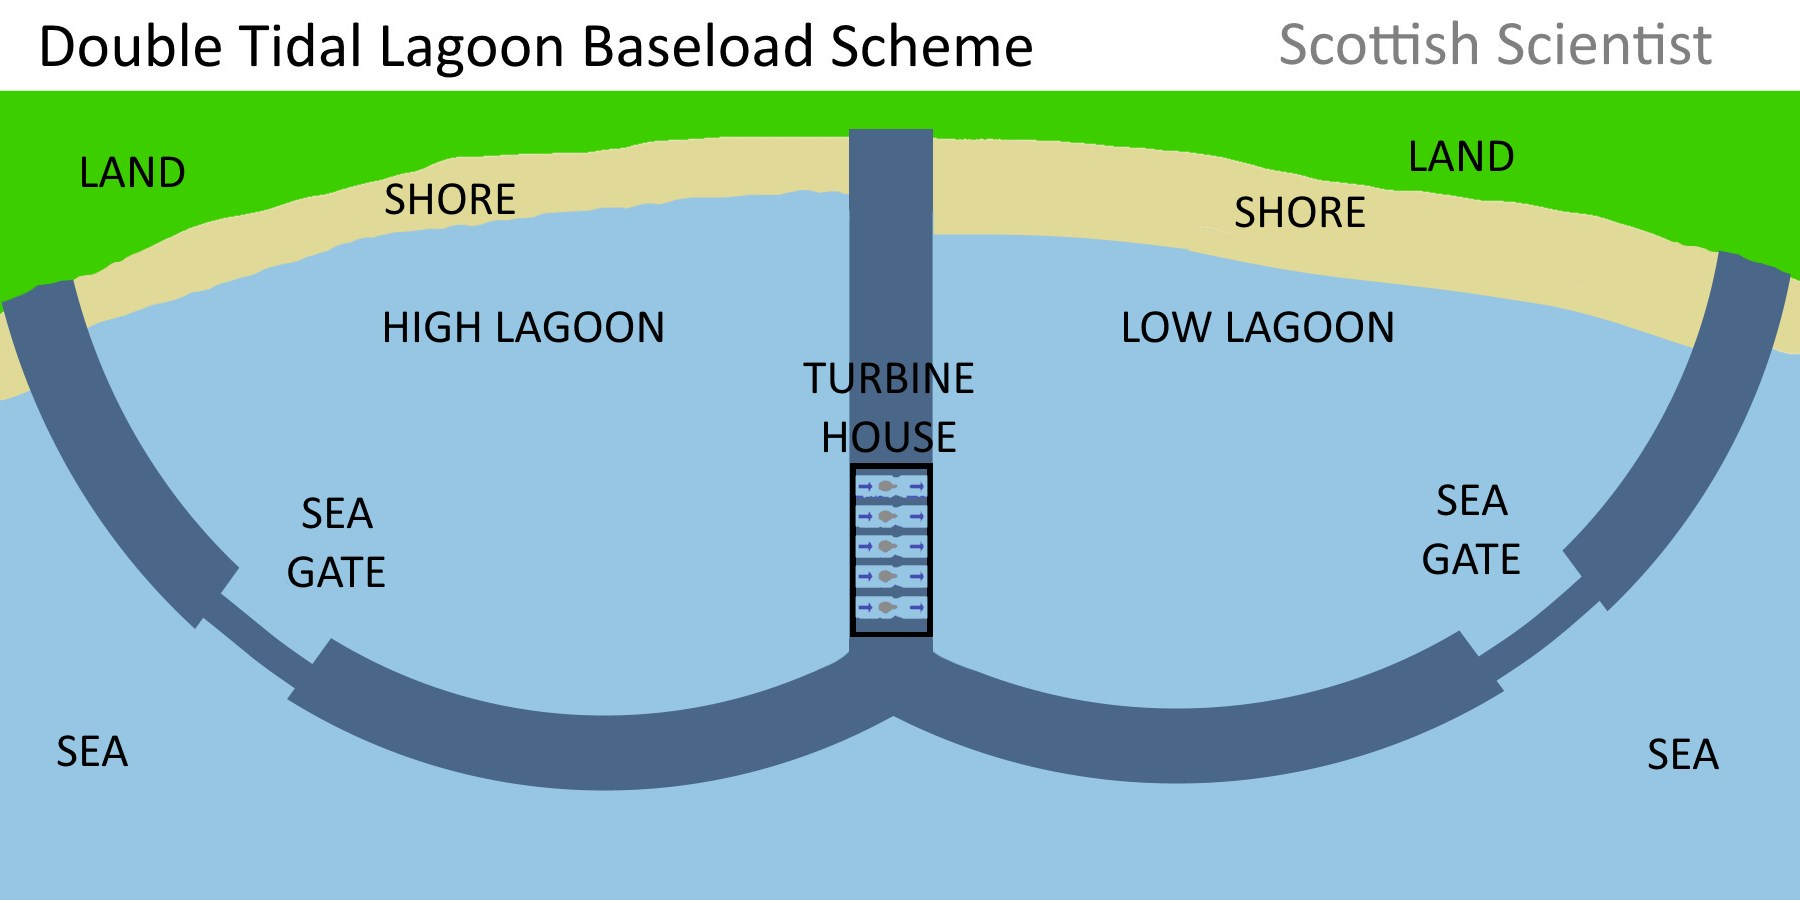 hight resolution of double tidal lagoon baseload scheme plan view